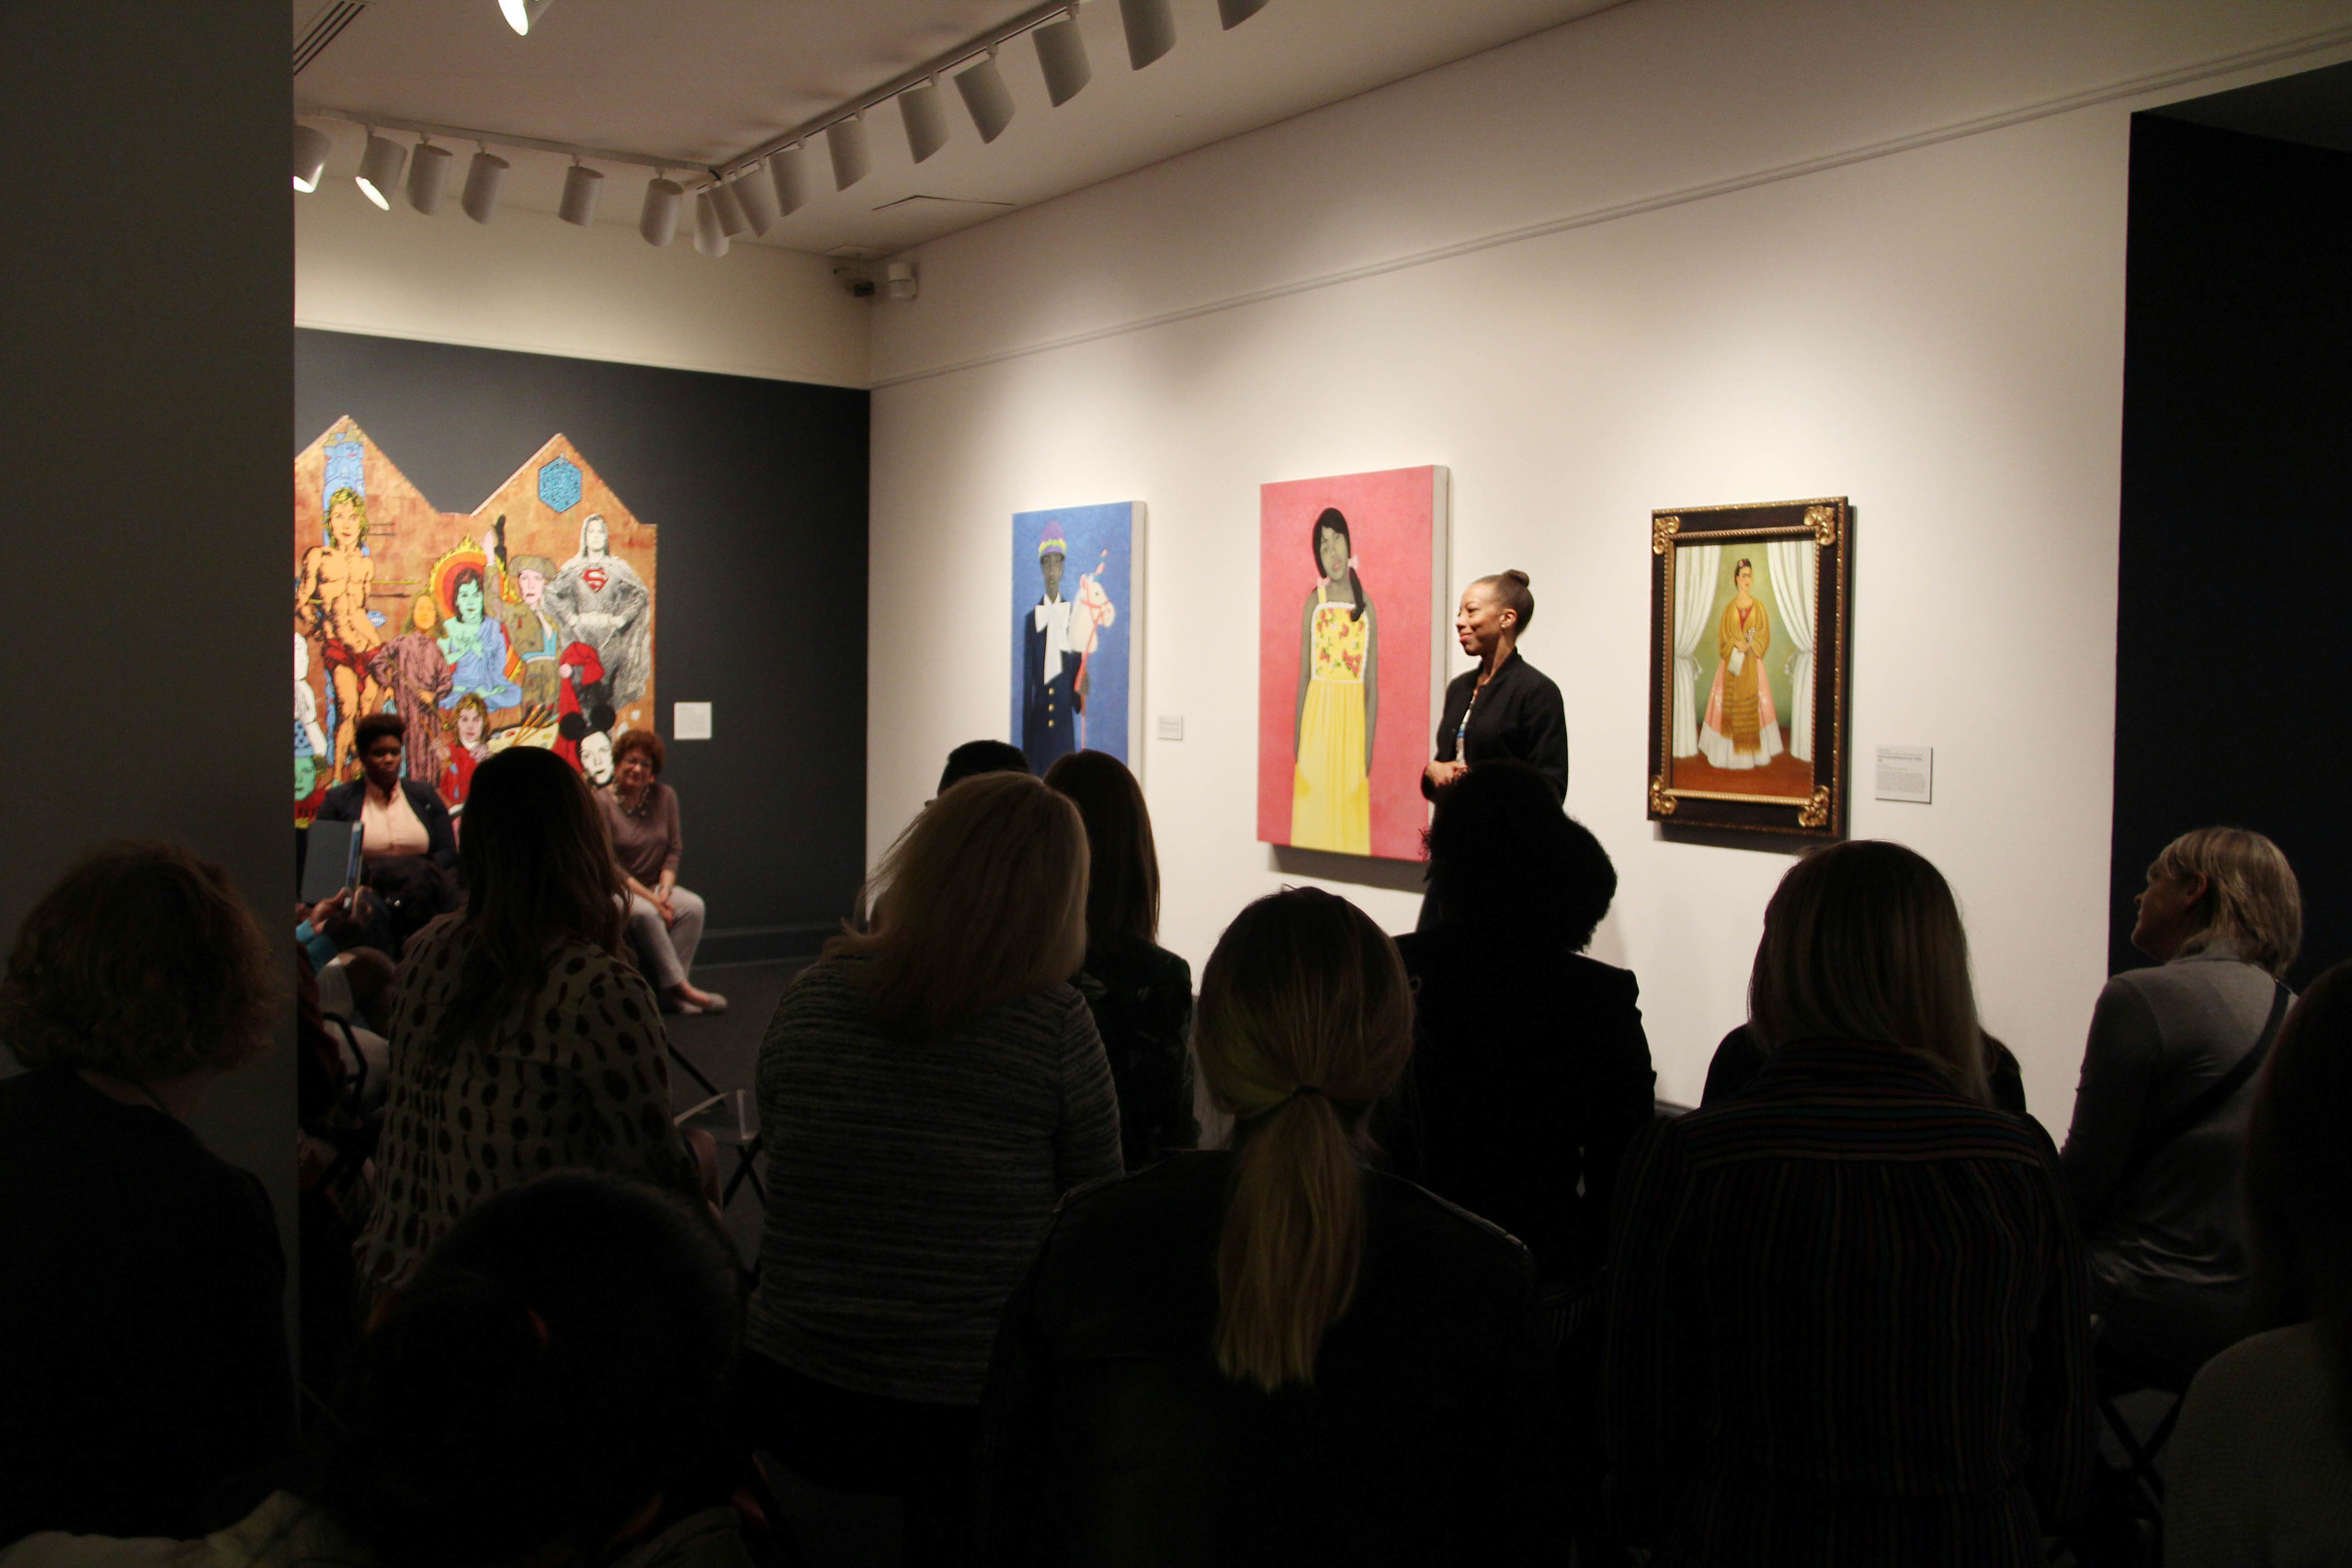 In a museum gallery, a medium-skinned woman stands in front of three striking portraits--two of figures painted in grayscale, another a Frida Kahlo portrait--and speaks to a crowd of people seated on gallery stools.